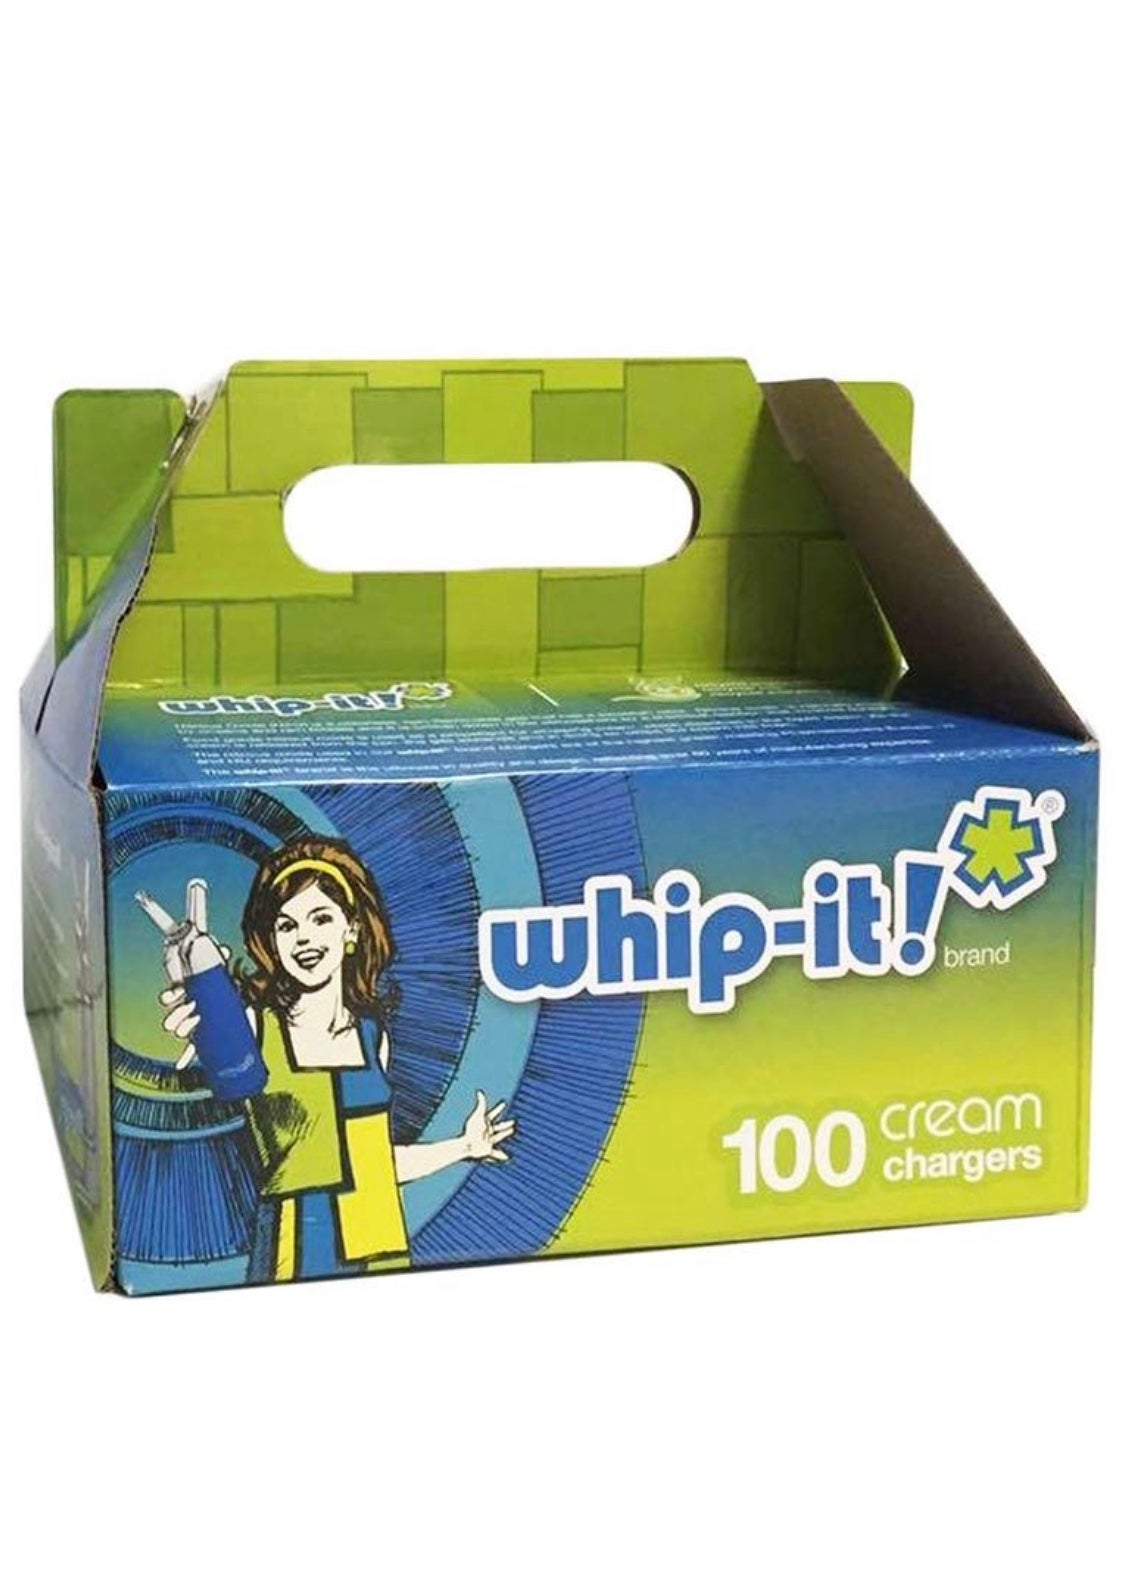 Image of Whip-it! 100 count chargers